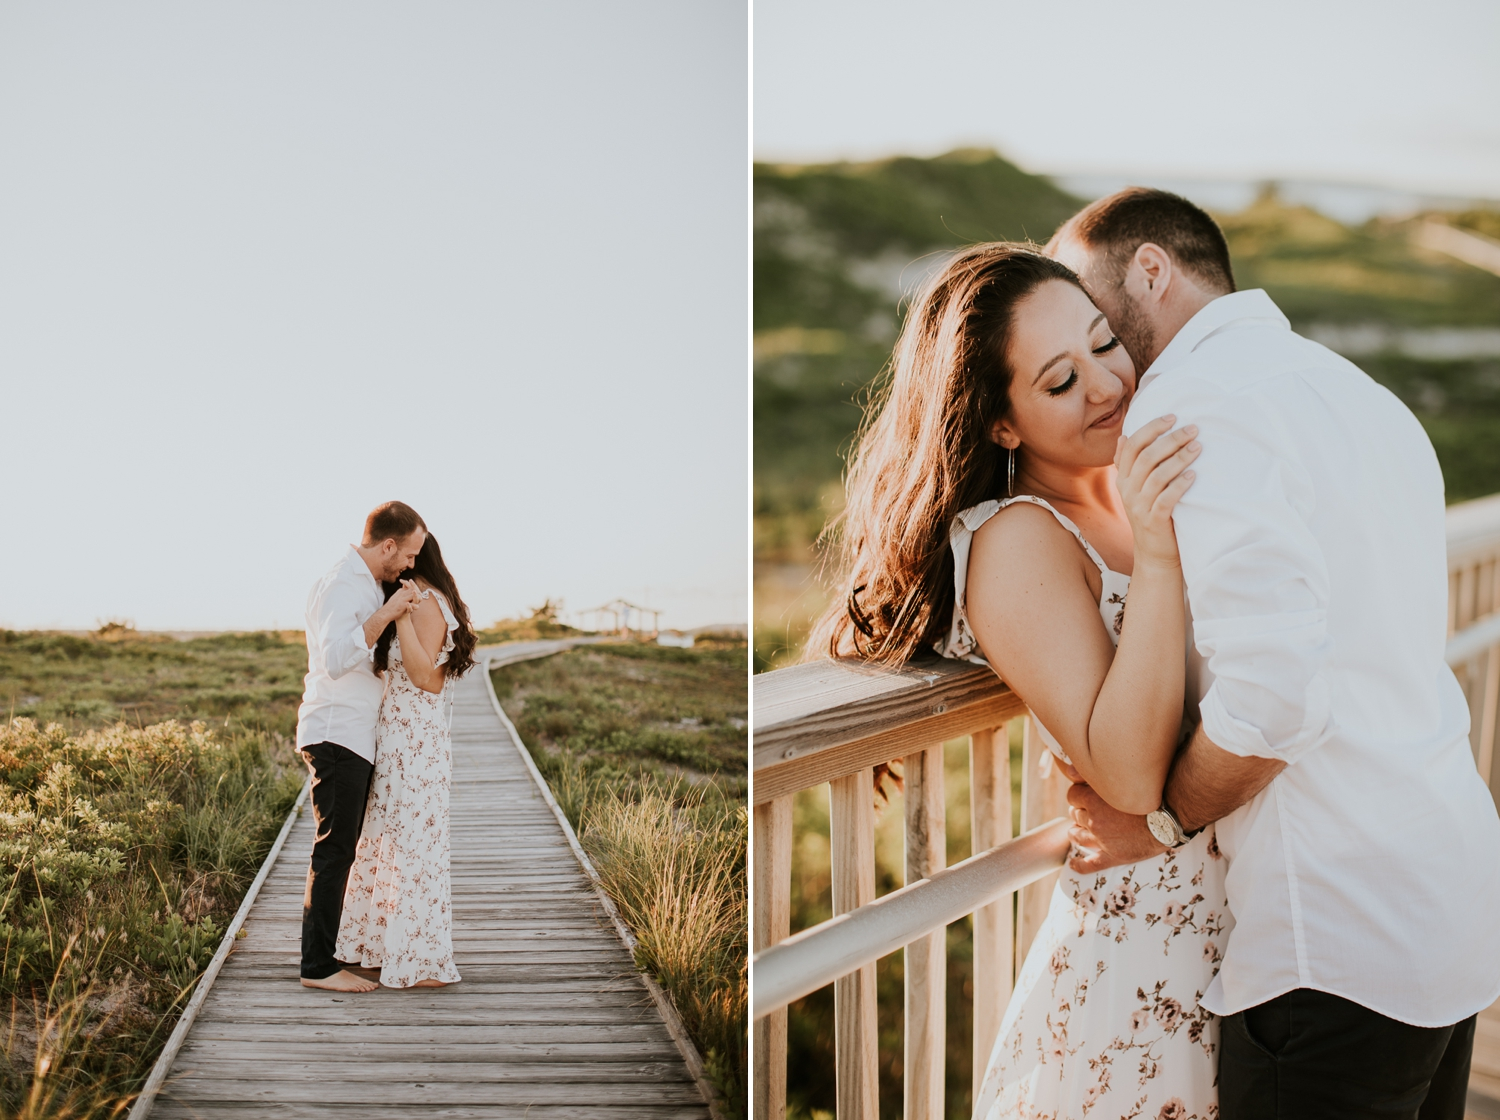 ho-hum-beach-boat-ride-engagement-photography-bellport-new-york 24.jpg